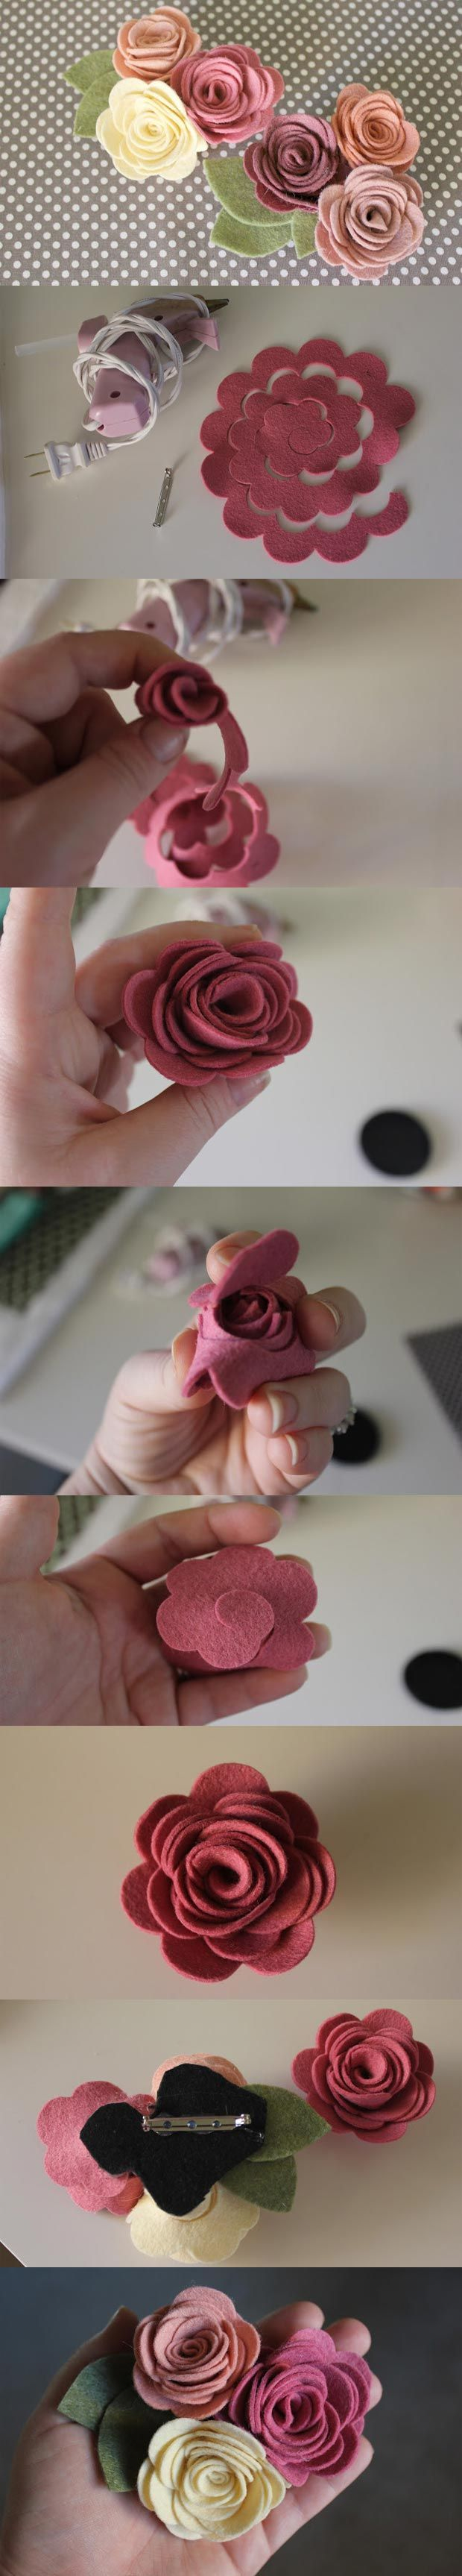 Super cute #DIY felt flowers to add a little color and pop to any outfit. Look pretty easy to make, too! /ES